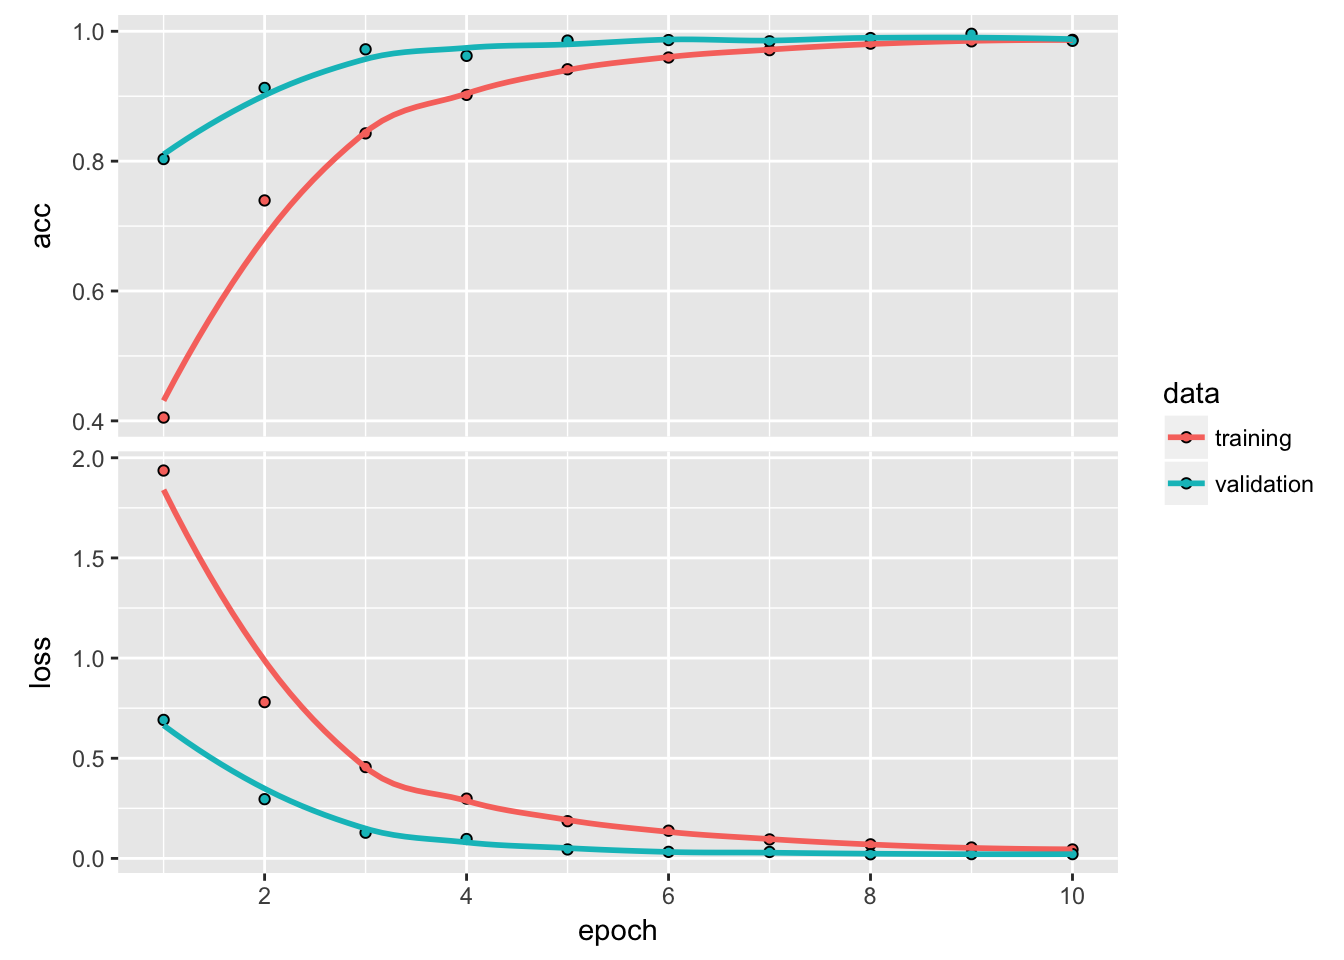 It's that easy! Image classification with keras in roughly 100 lines